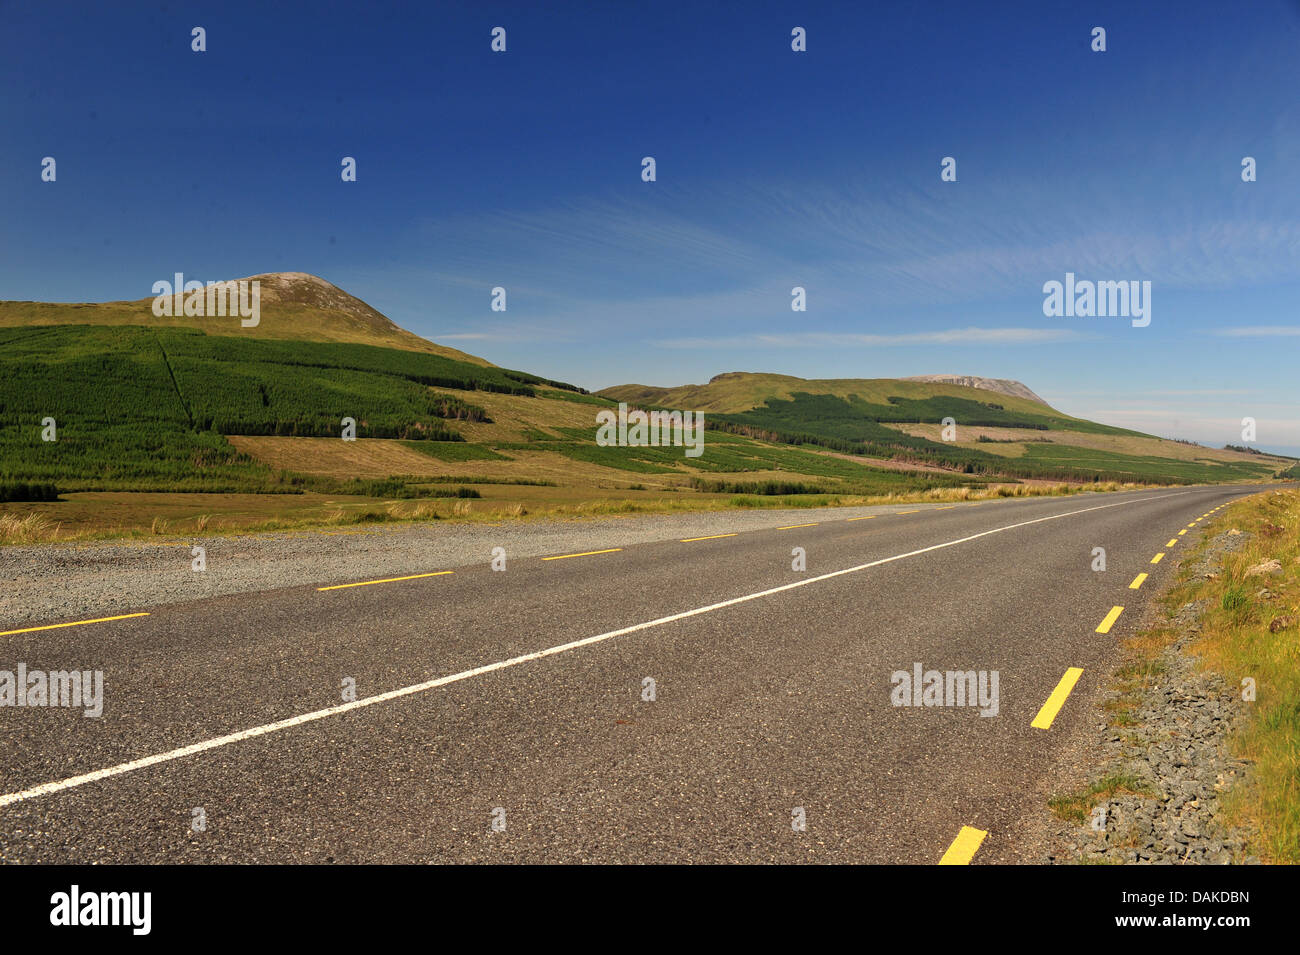 Derryveagh Mountains and road to Dunlewey, County Donegal, Ireland. - Stock Image